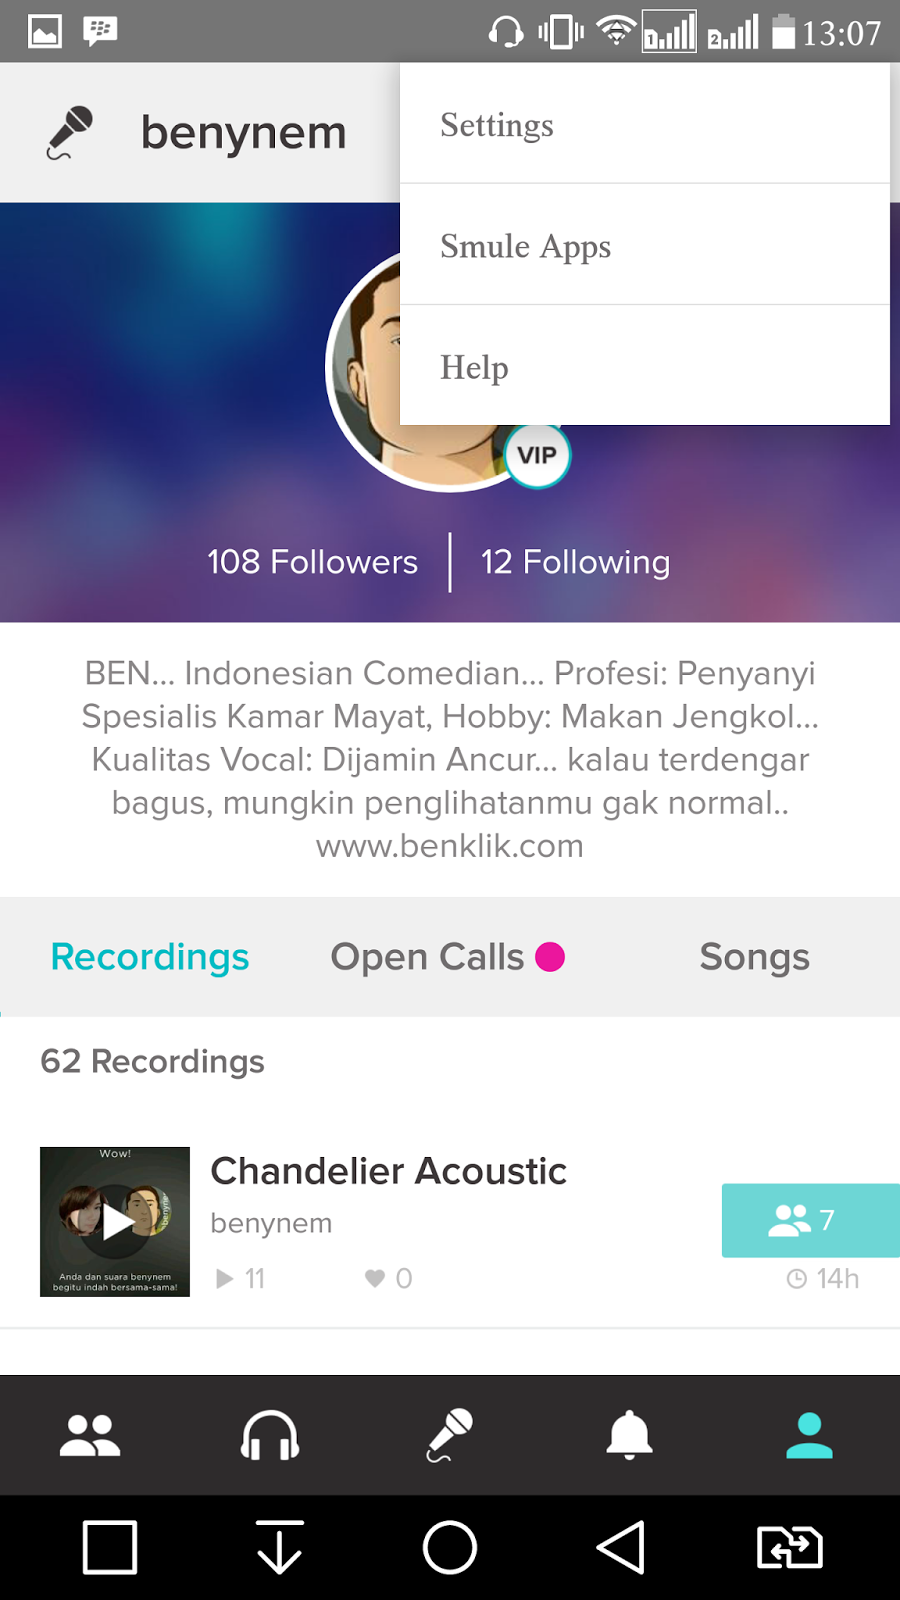 Guide karaoke smule click on three points at the top just below the clock so that it appears the settings menu smule apps and help stopboris Images